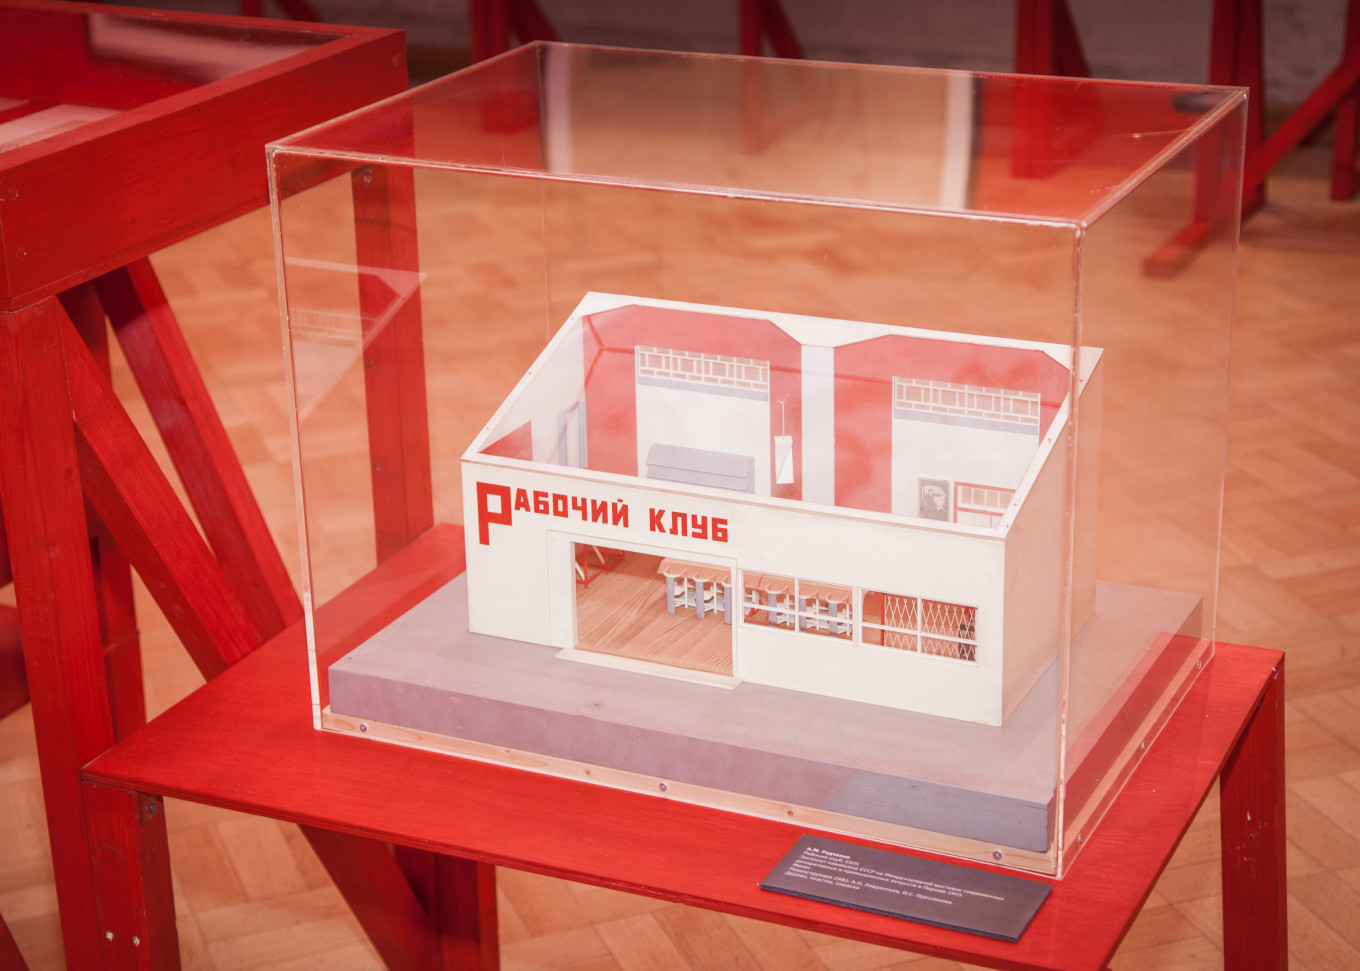 Rodchenko's model of a Worker's Club, one of the new types of buildings avant-garde architects designed. Courtesy of MUAR